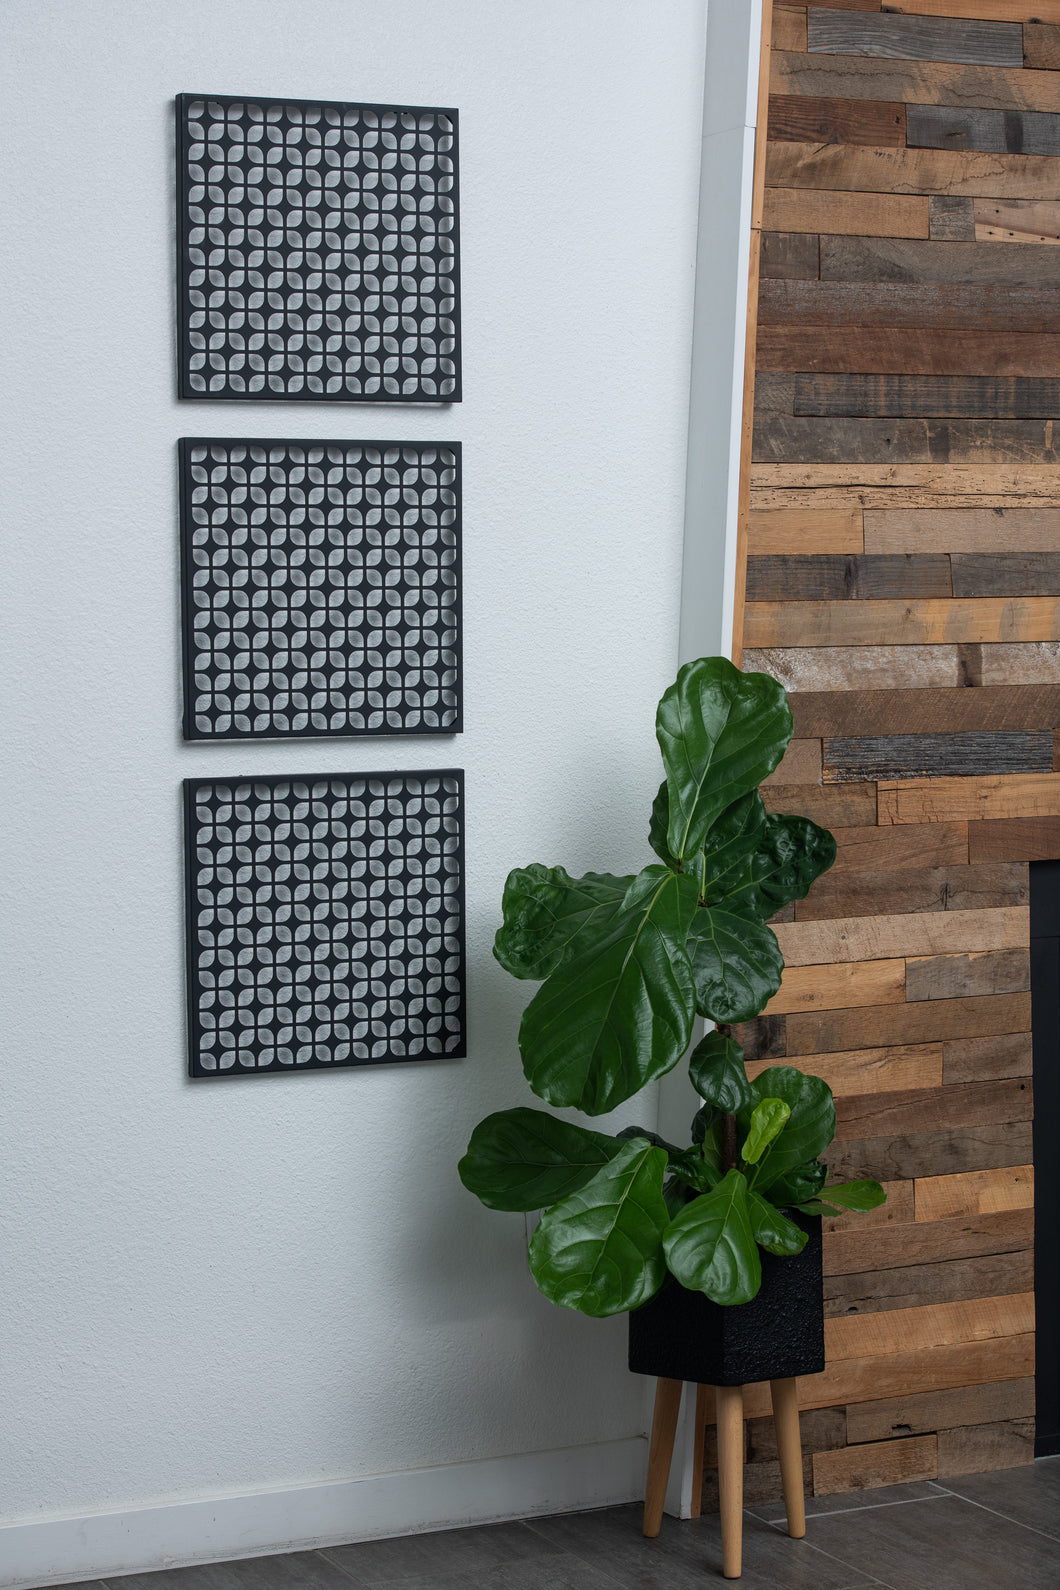 Breeze Block Wall Tile: 15.5